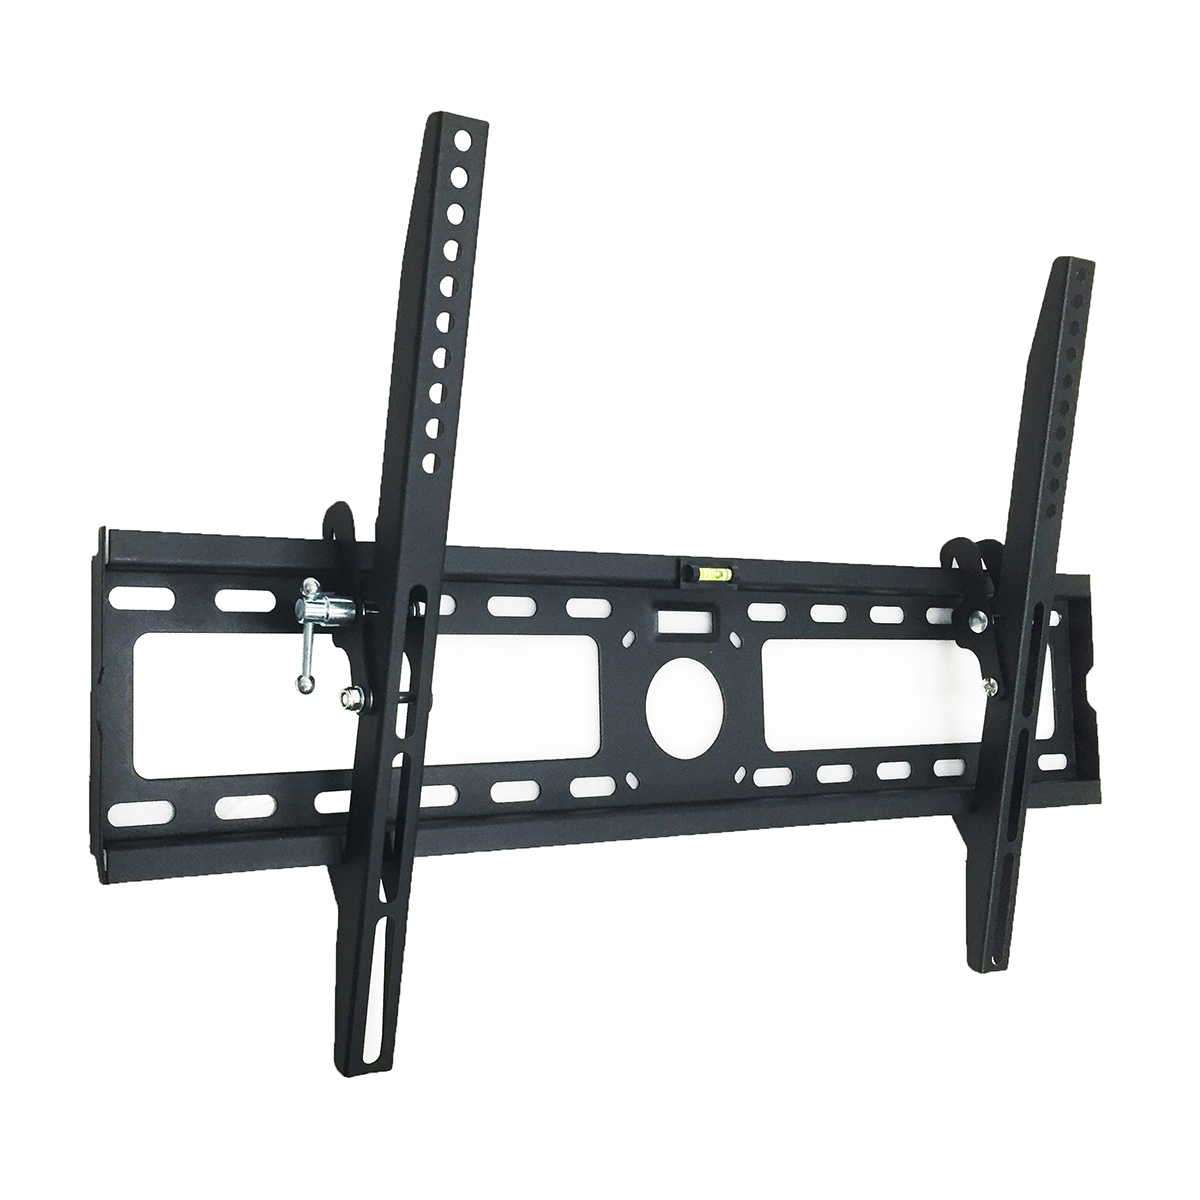 flat tilt tv wall mount bracket for 32 40 42 47 50 55 60 65 inch ebay. Black Bedroom Furniture Sets. Home Design Ideas